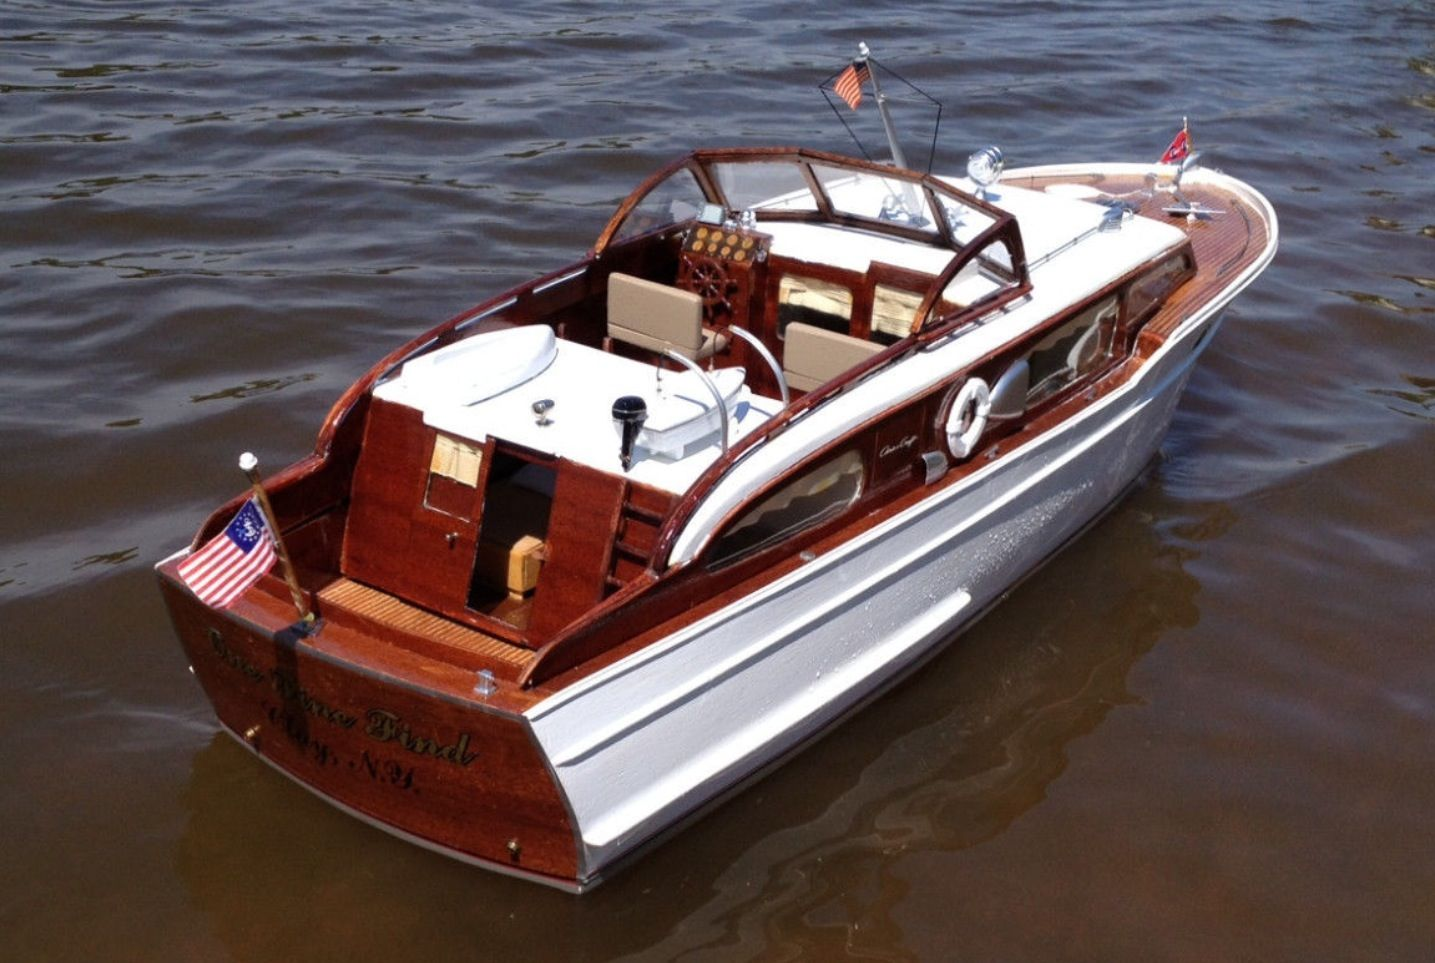 Chris craft model boat plans - Chris Craft Model Boat I D Love This We Lived Right